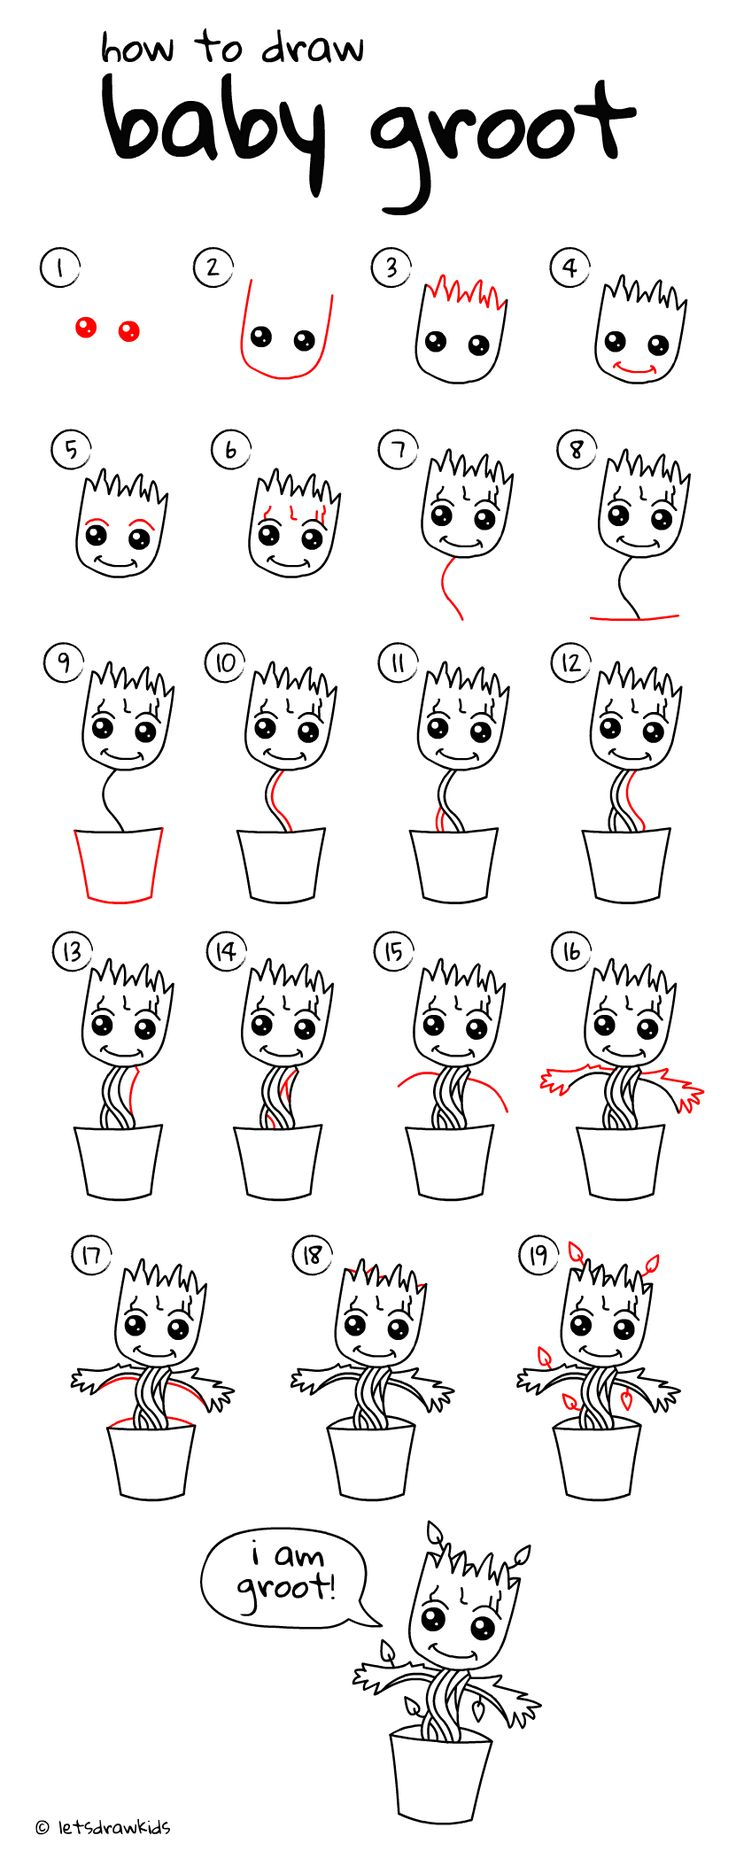 How To Draw Baby Groot Easy Drawing, Step By Step, Perfect For Kids